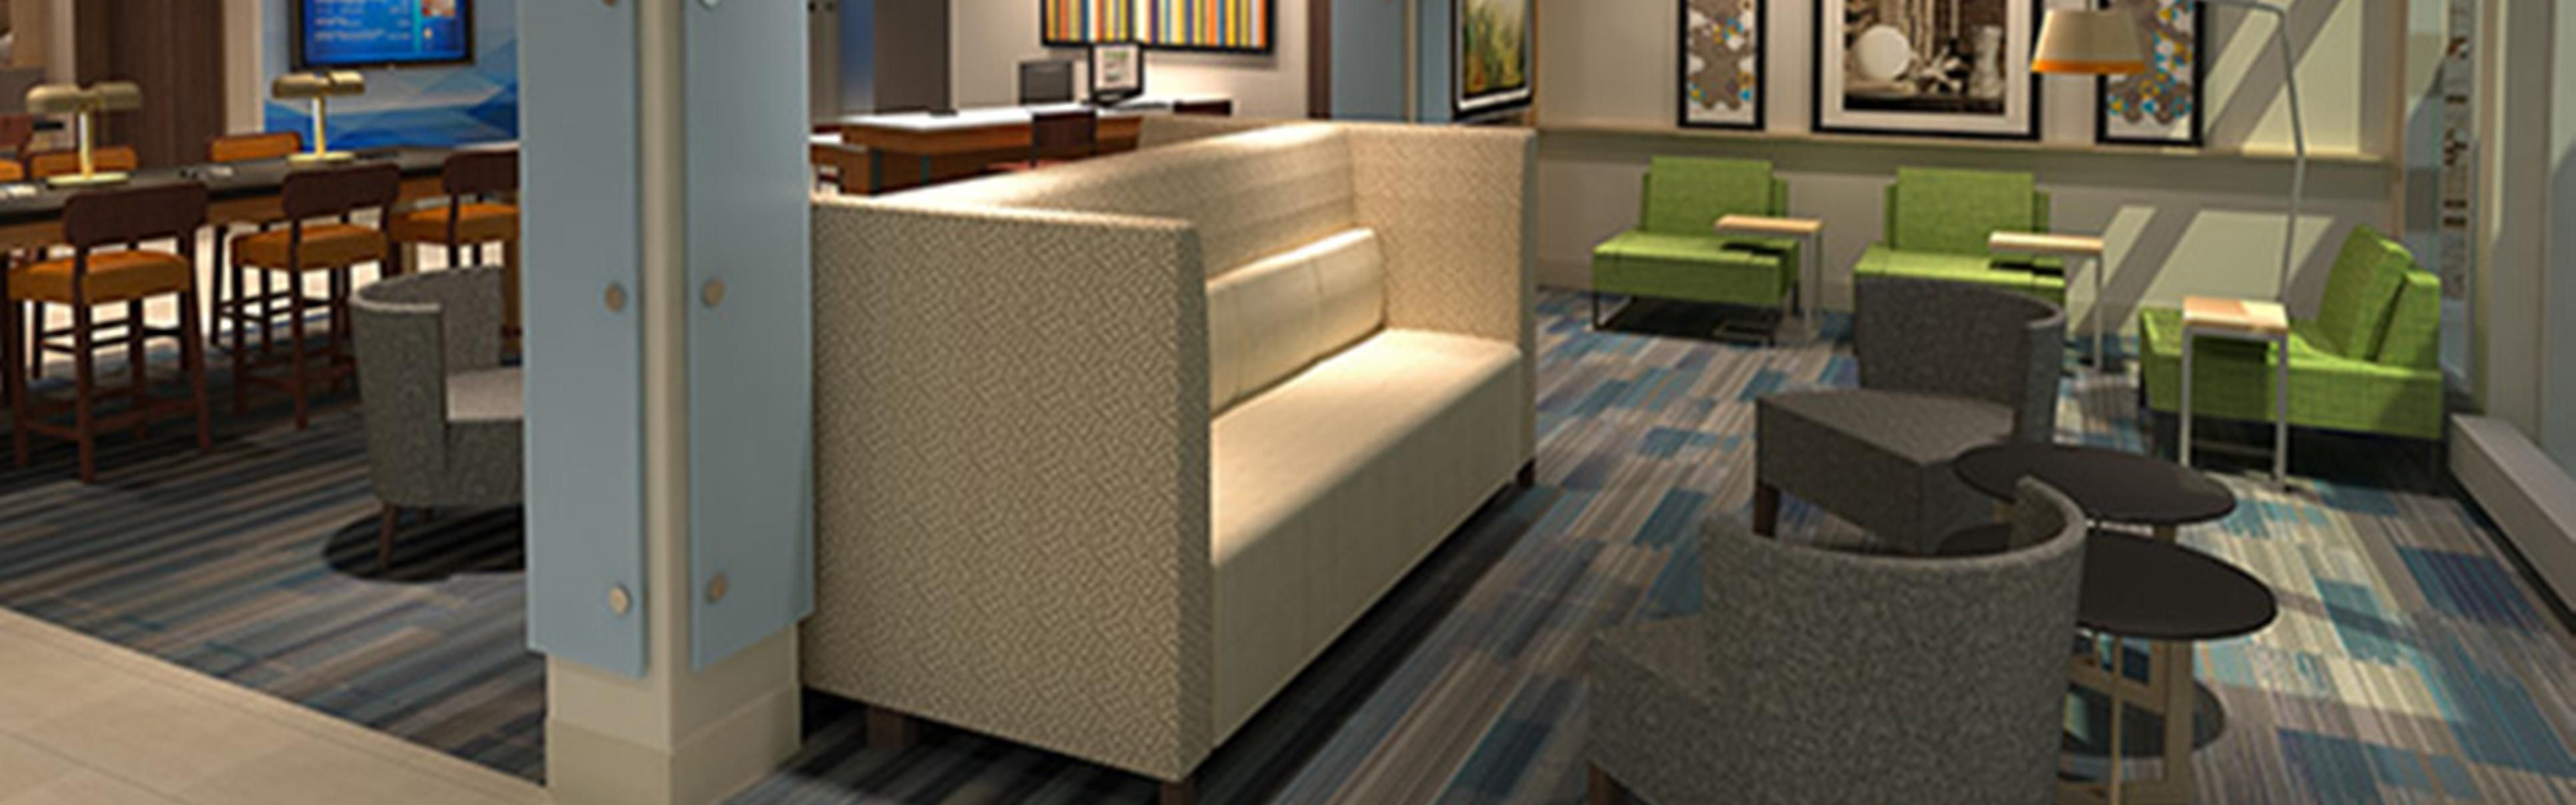 Holiday Inn Express & Suites Houston NW - Cypress Grand Pky image 0